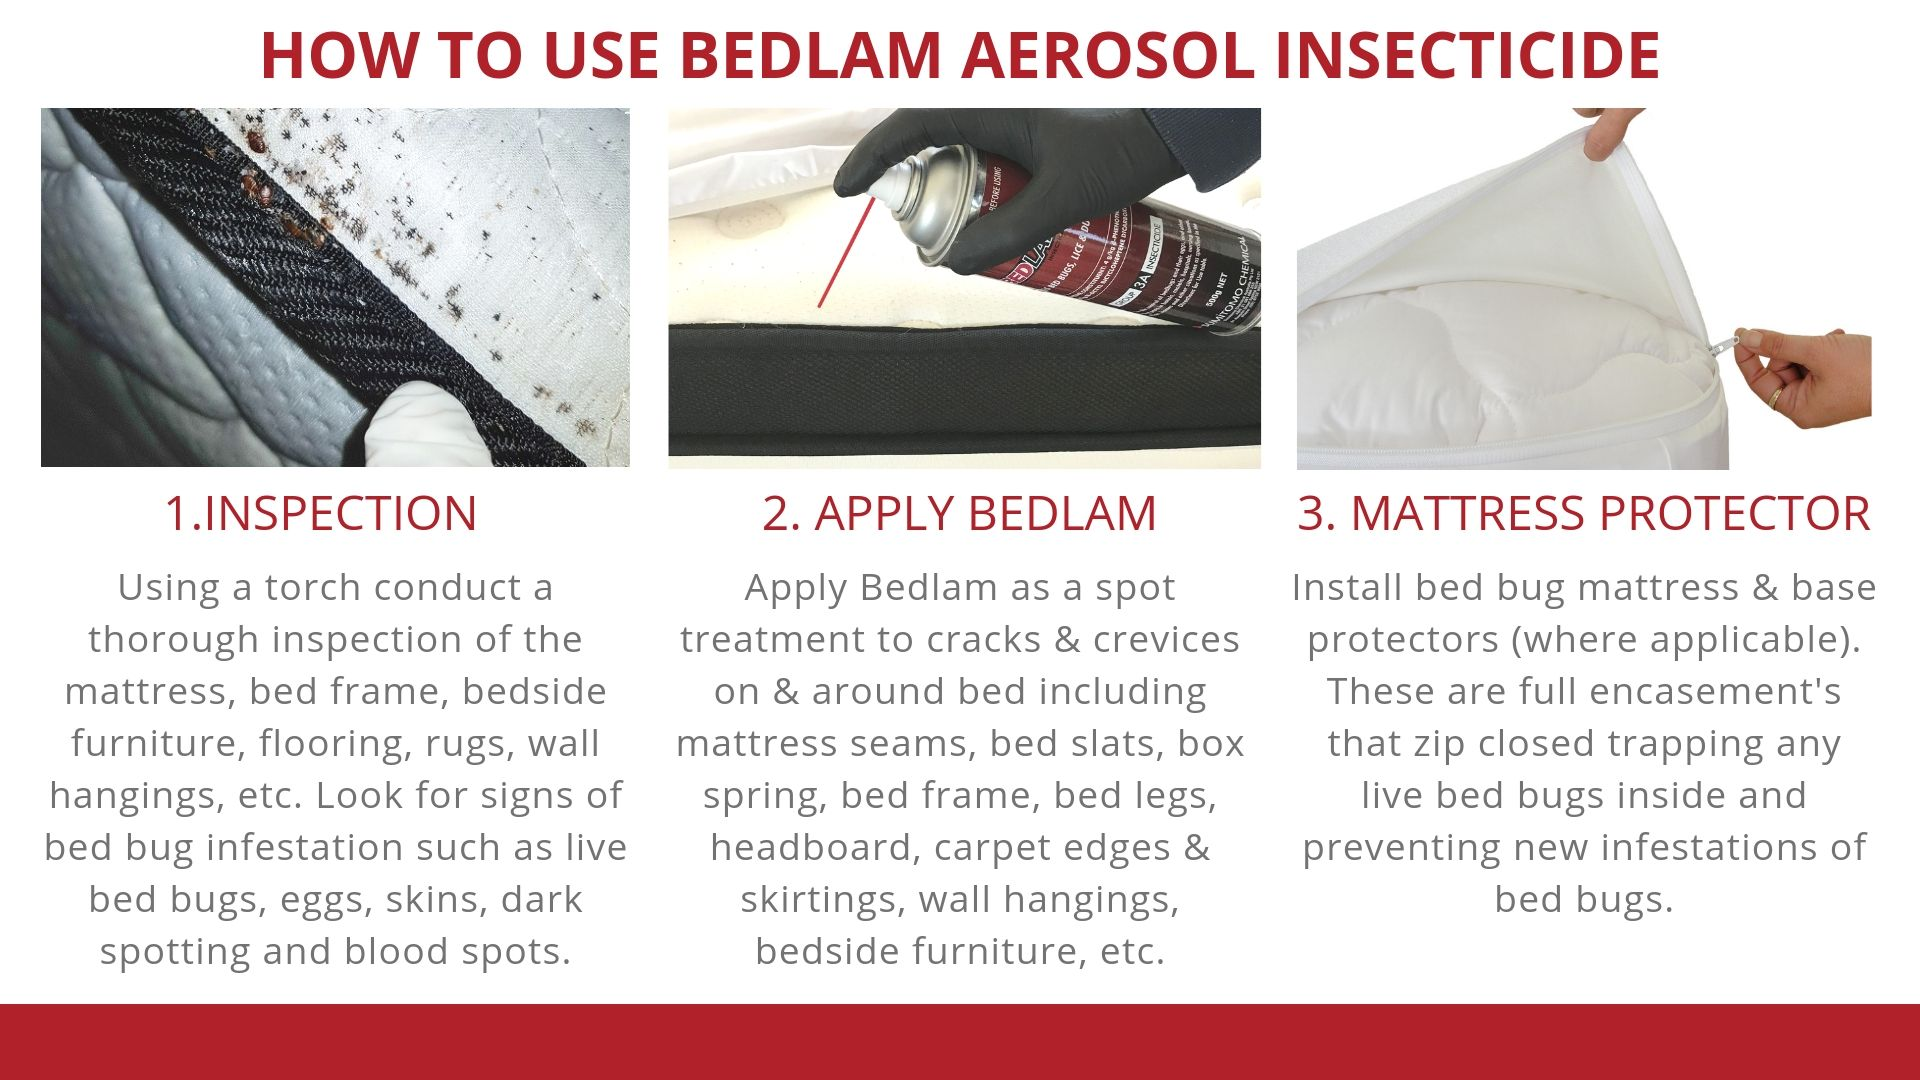 How to use Bedlam Aerosol Insecticide